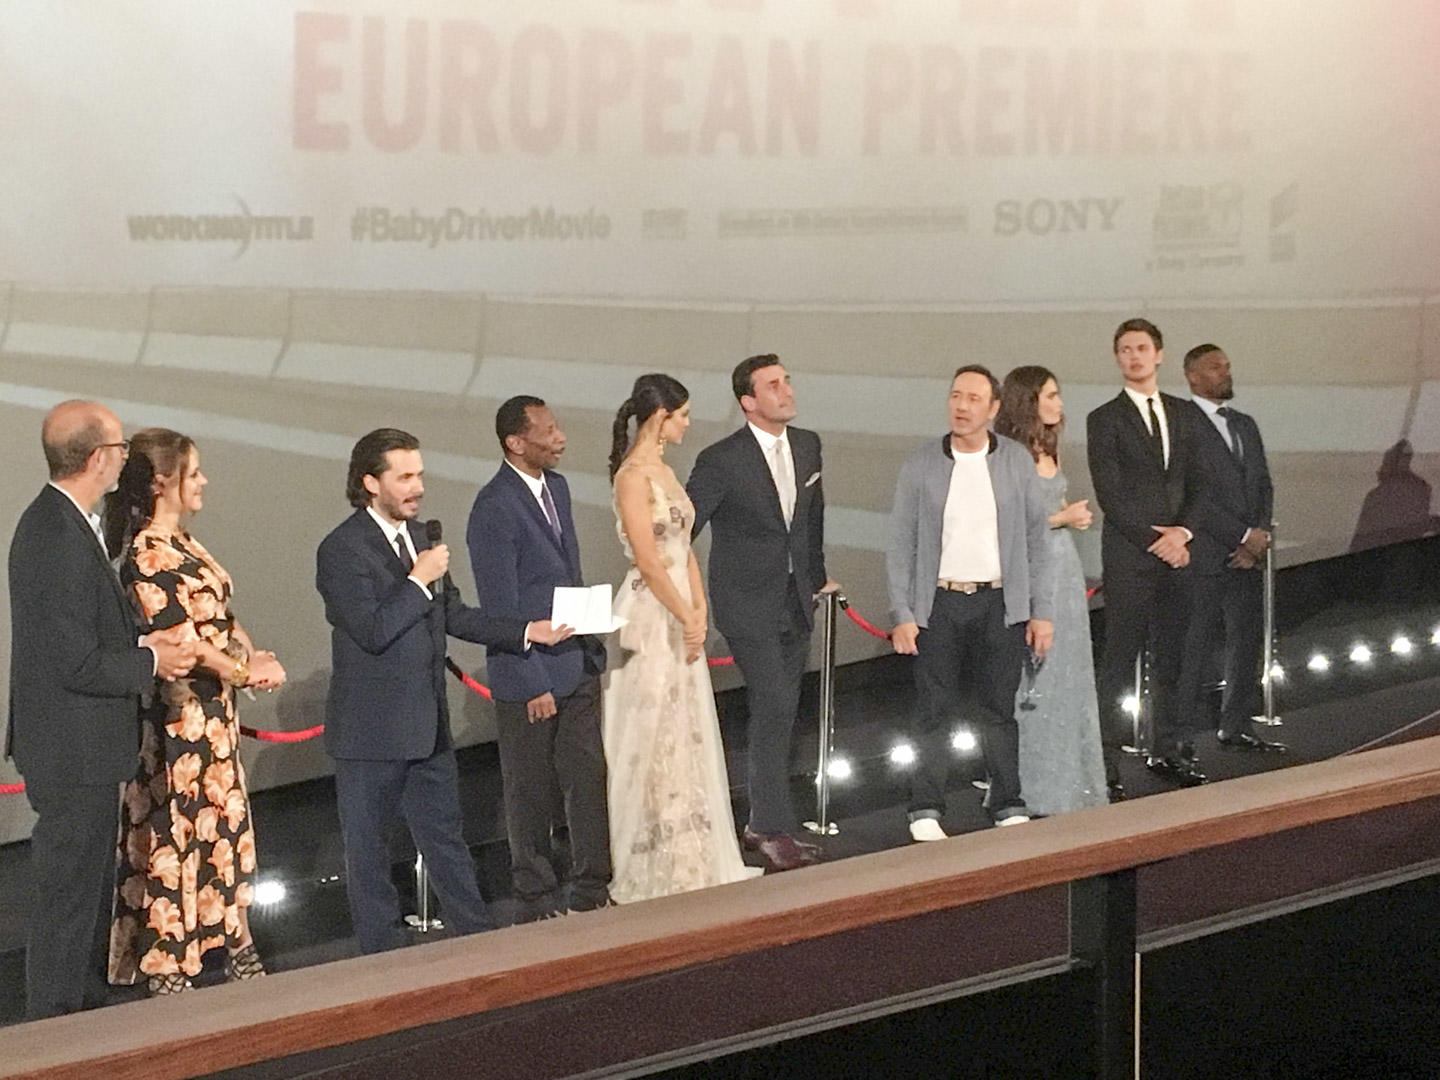 film stars lined up for the european premire of baby driver. L-R Eric Feller, Nira Park, Edgar Wright, CJ Jones, Eiza Gonzales, John Hamm, Kevin Spacey, Lily James, Ansel Elgort and Jamie Foxx.